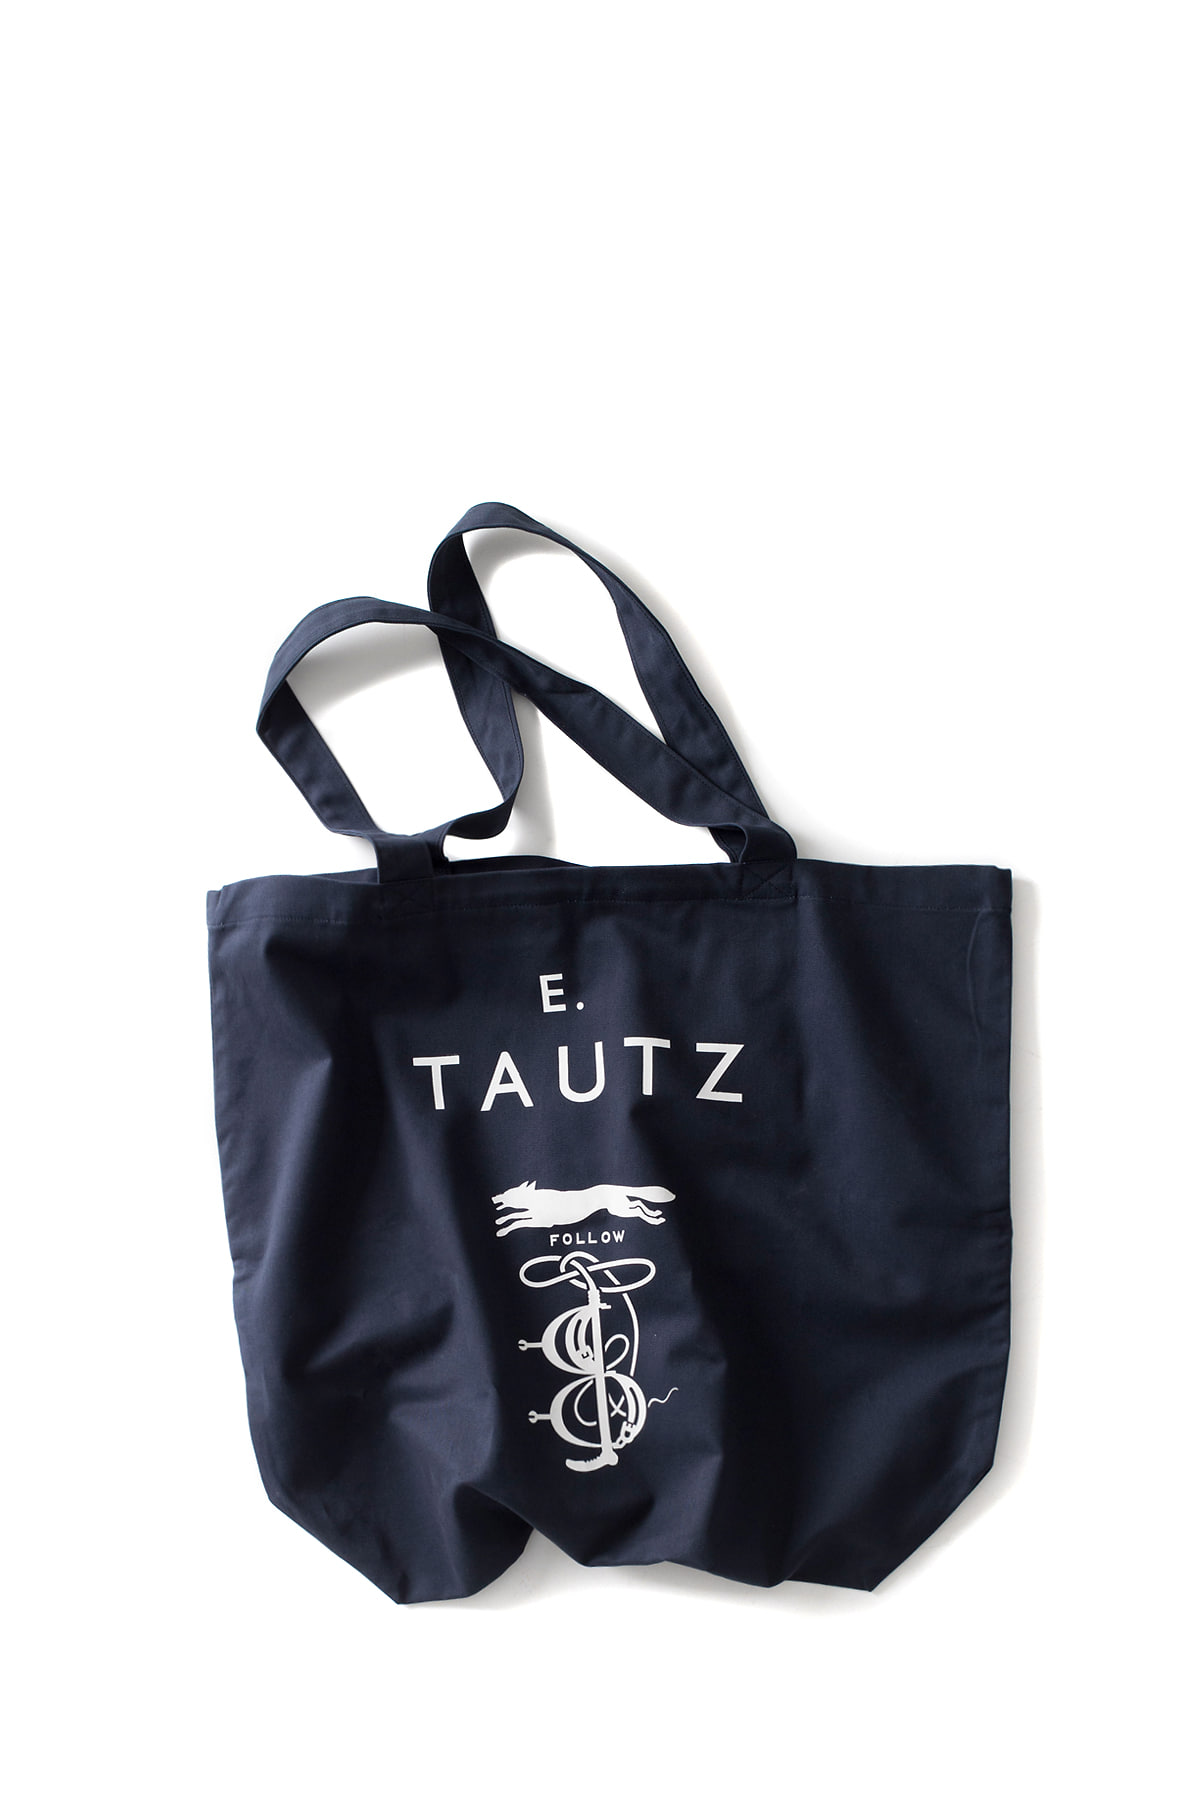 E. Tautz : Core Tote Bag (White)